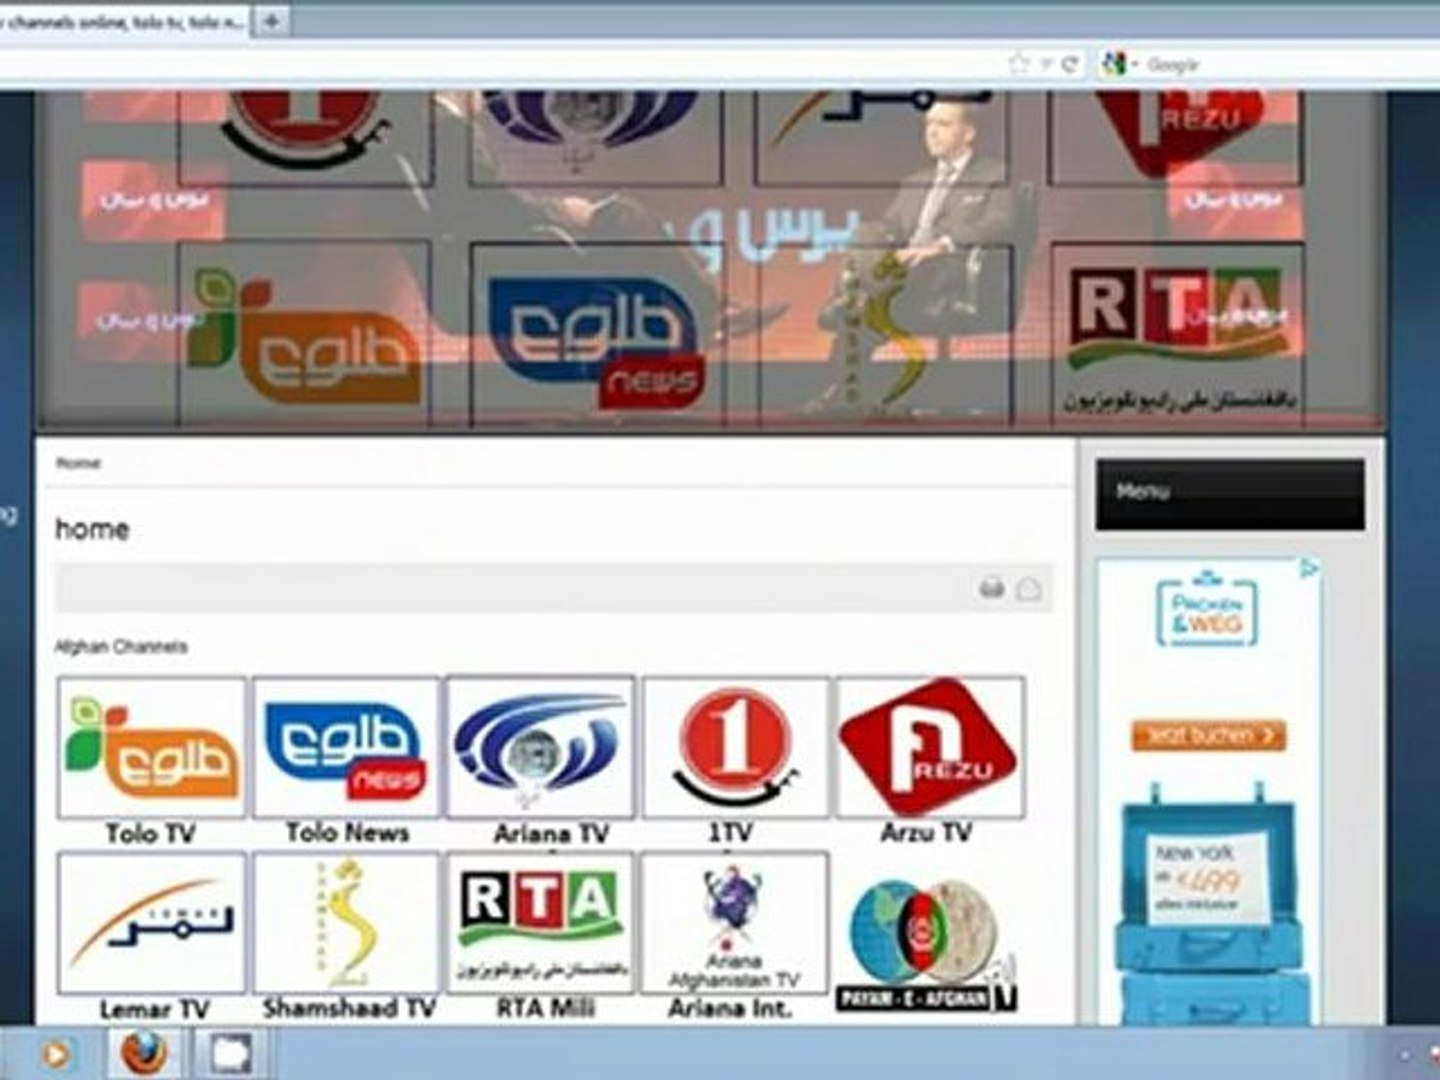 Watch afghan TV Channels Live - Tolo tv, Tolo news, ariana tv